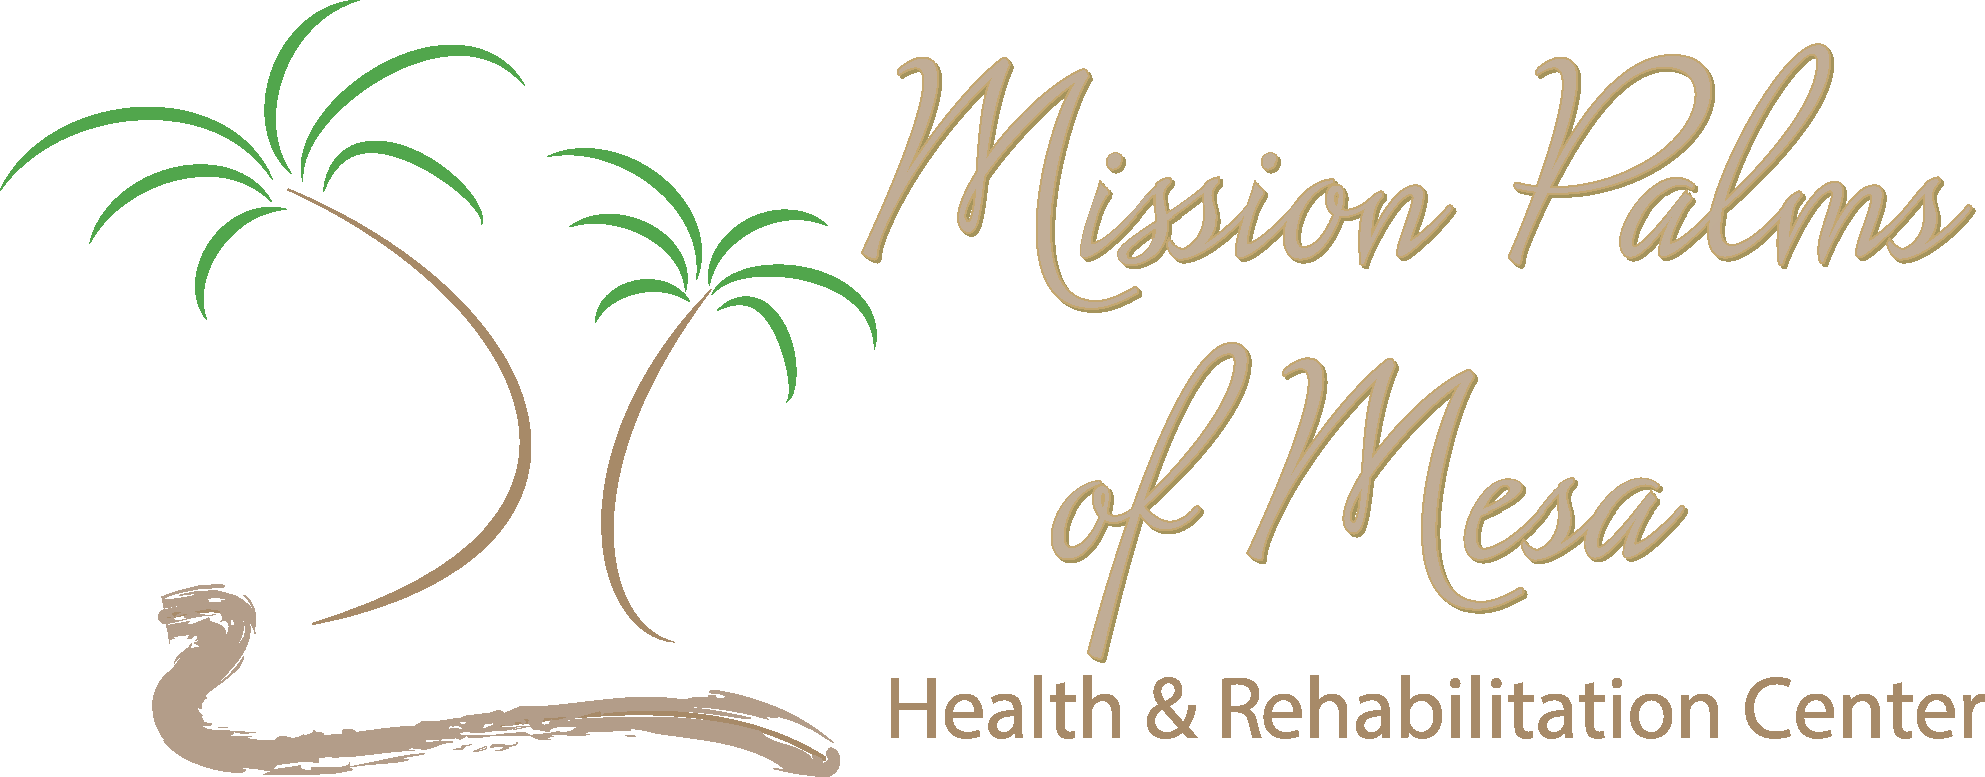 Mission Palms of Mesa Health & Rehabilitation Center Logo